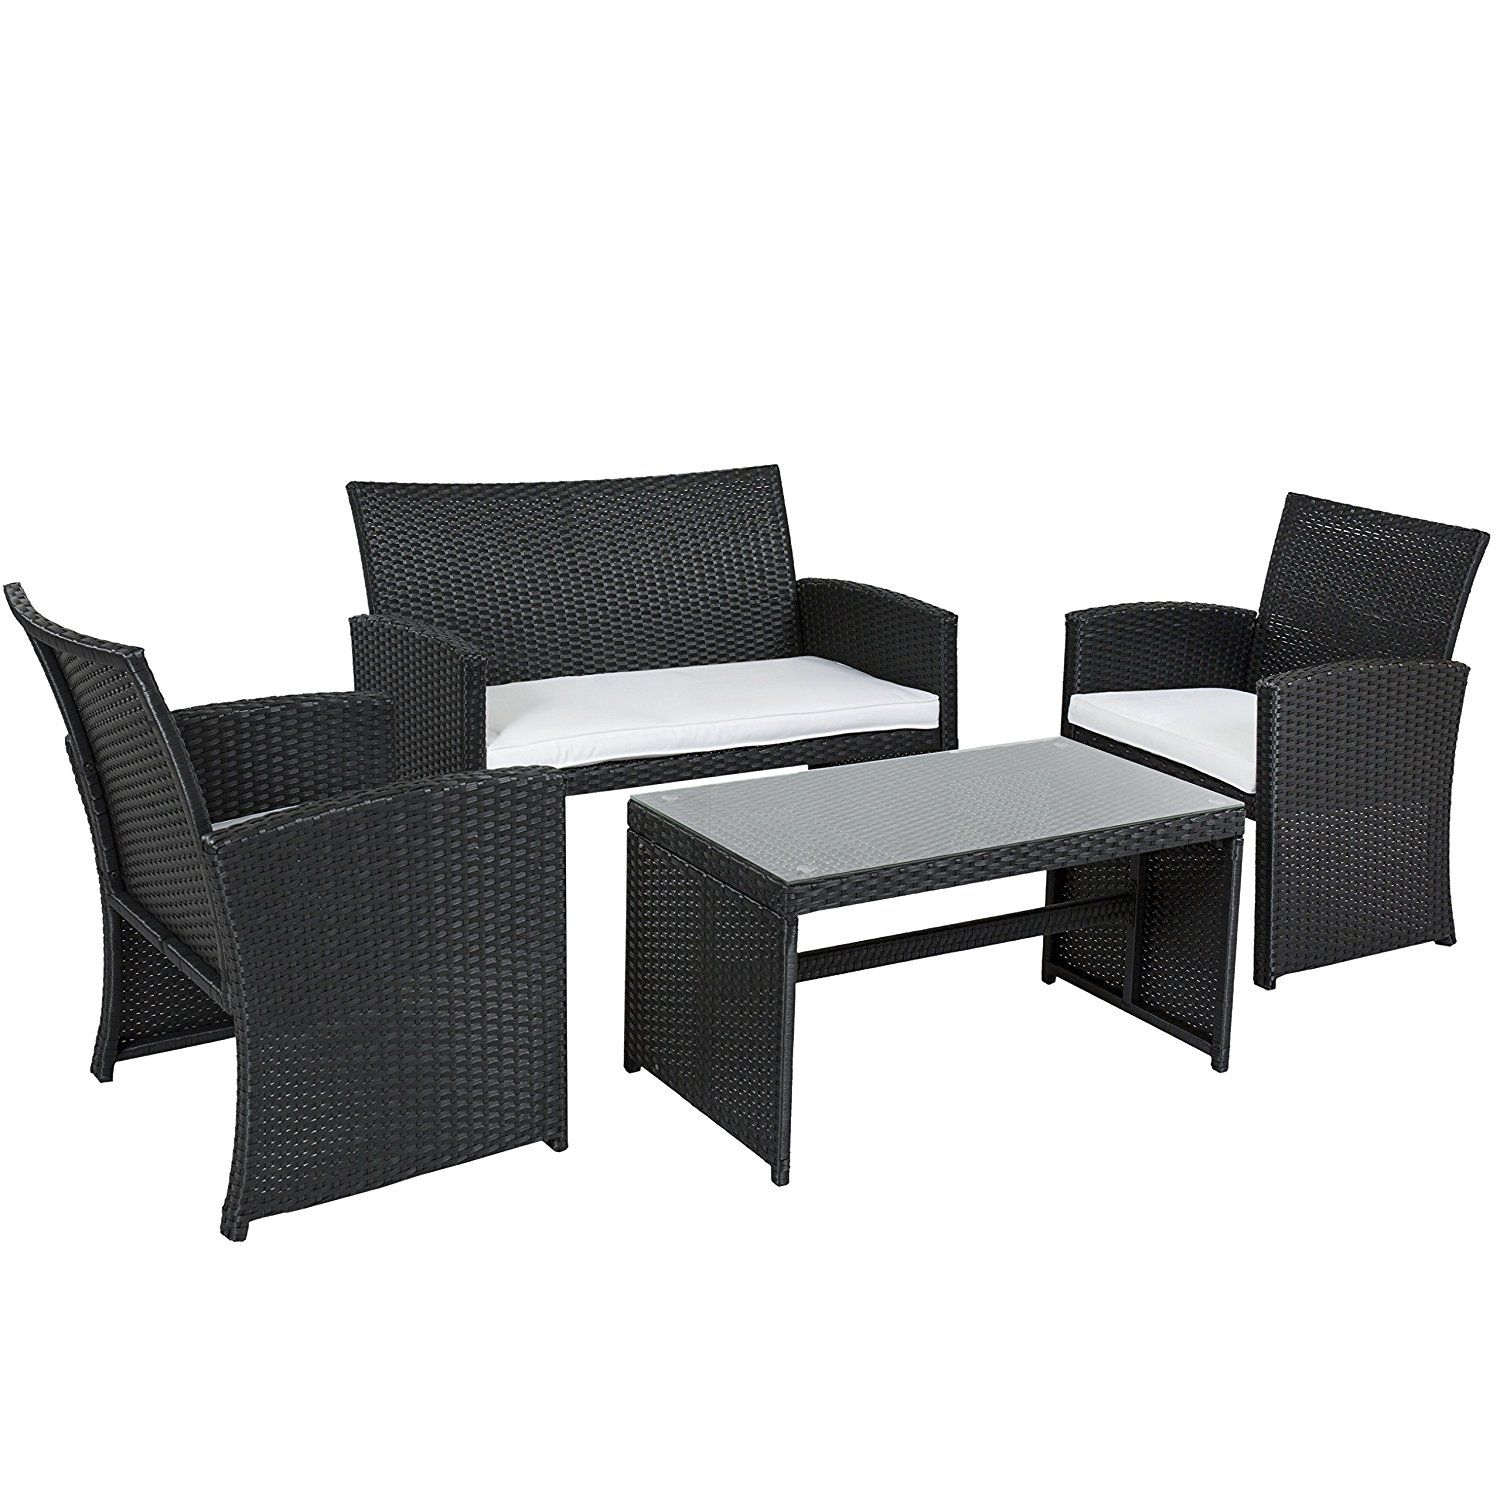 Best choice products outdoor garden patio pc cushioned seat black